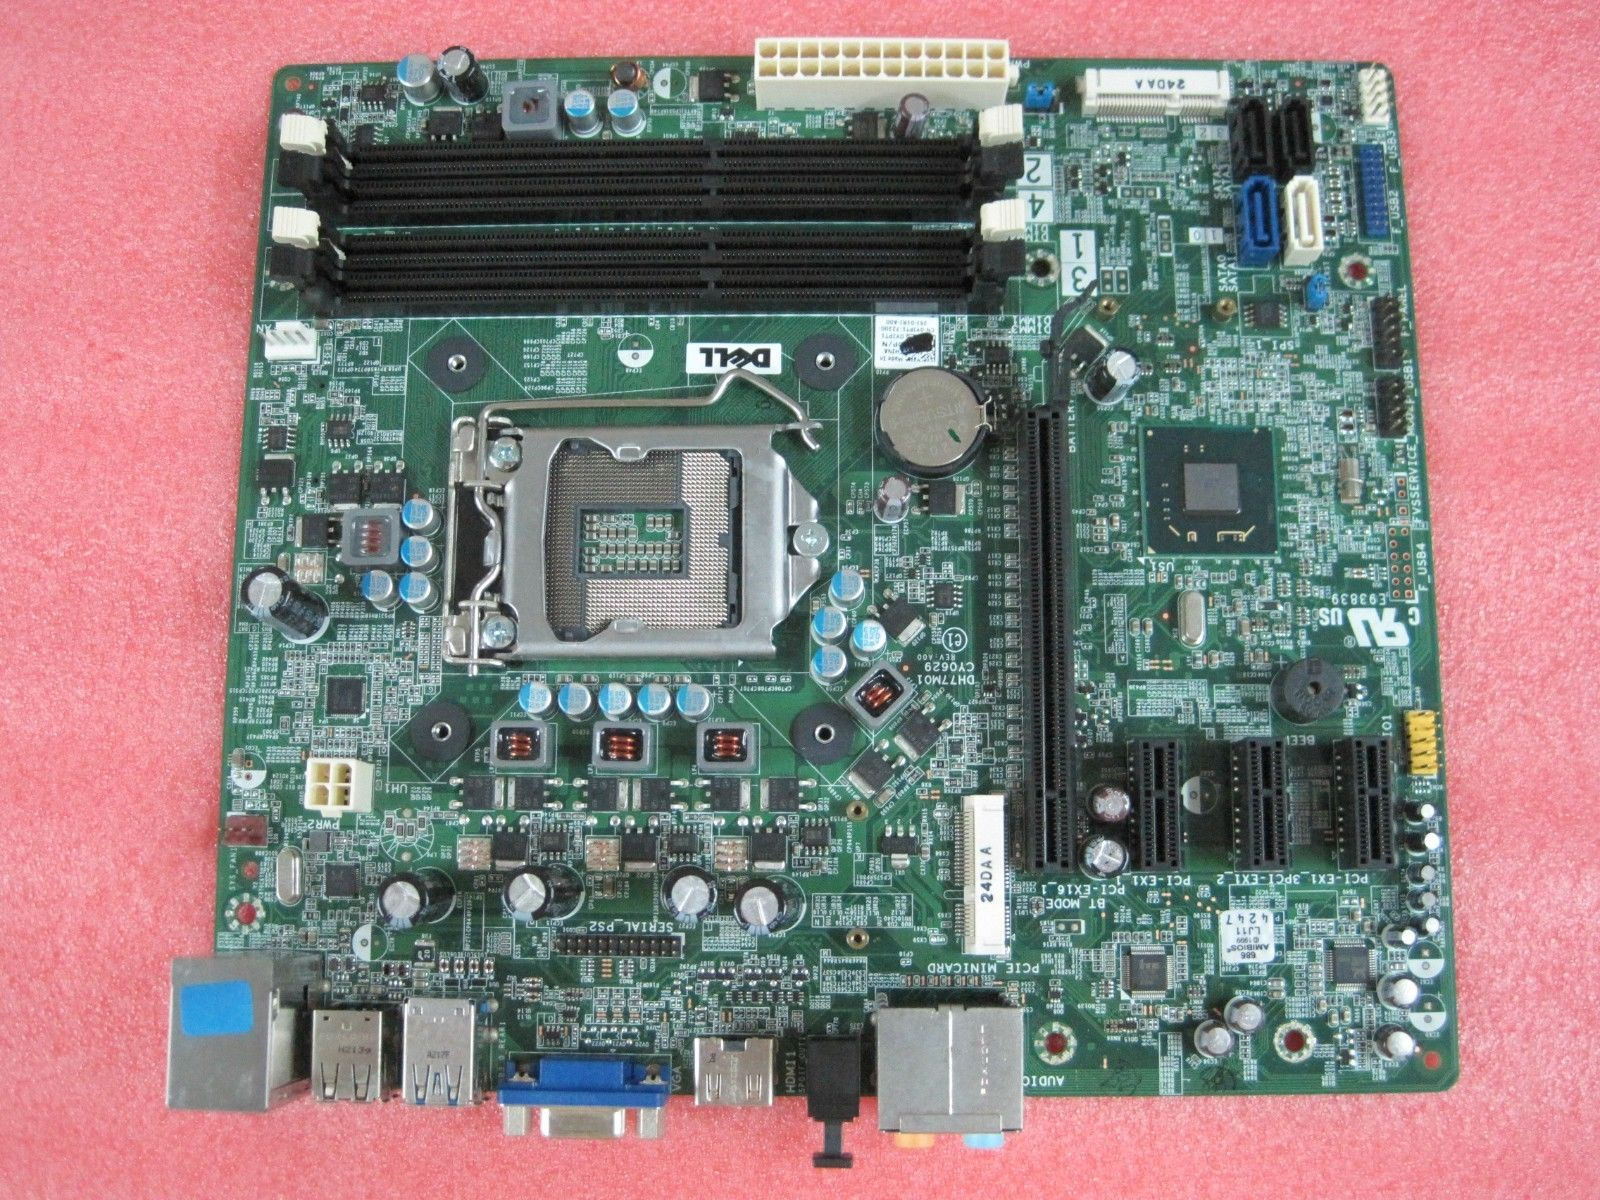 dell xps 8500 motherboard diagram vdo gauges wiring diagrams bing images